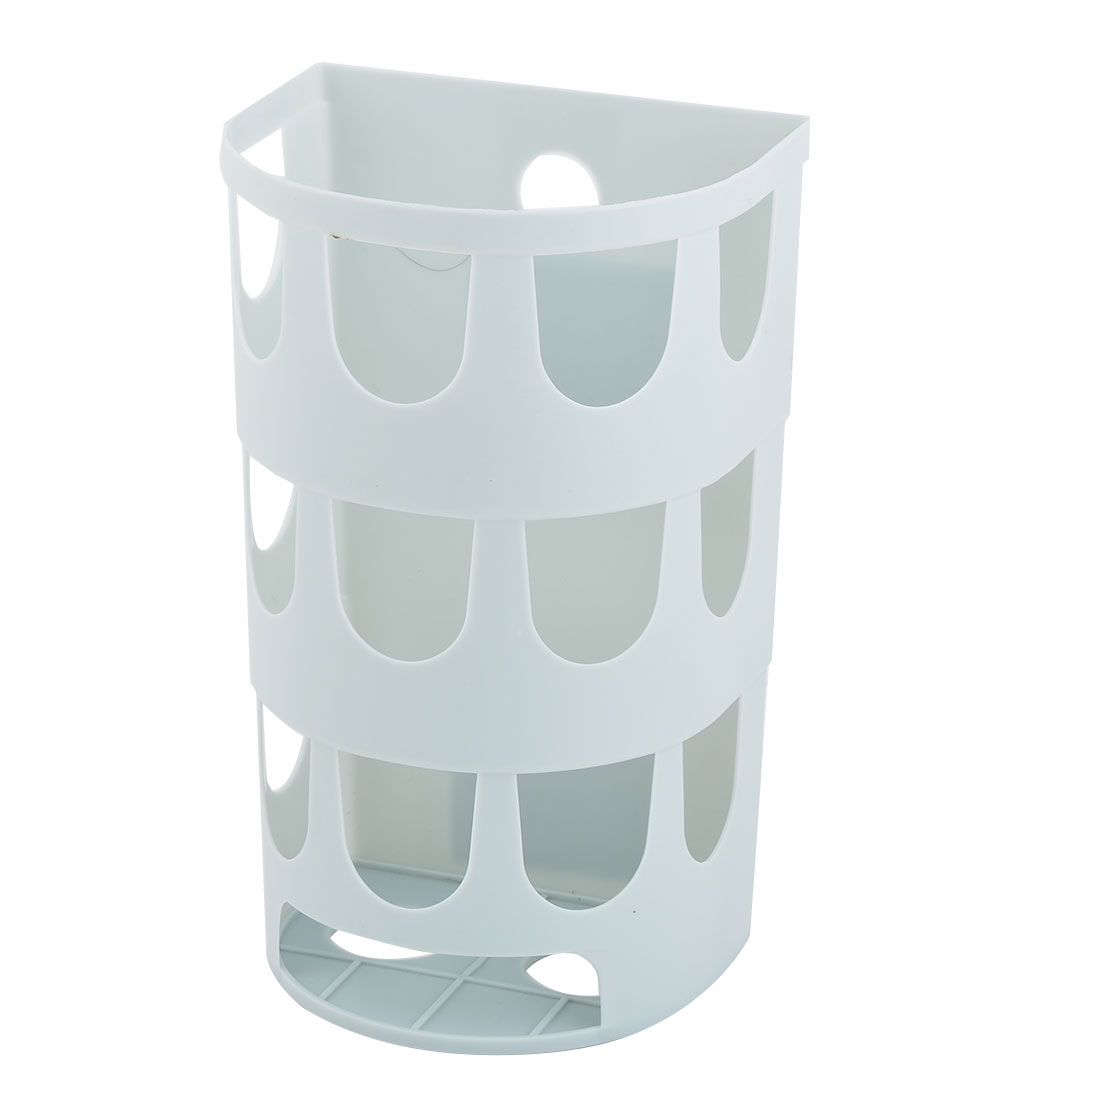 Home Plastic Self-adhesive Wall Mounted Waste Bag Sundries Storage Box Case Light Blue